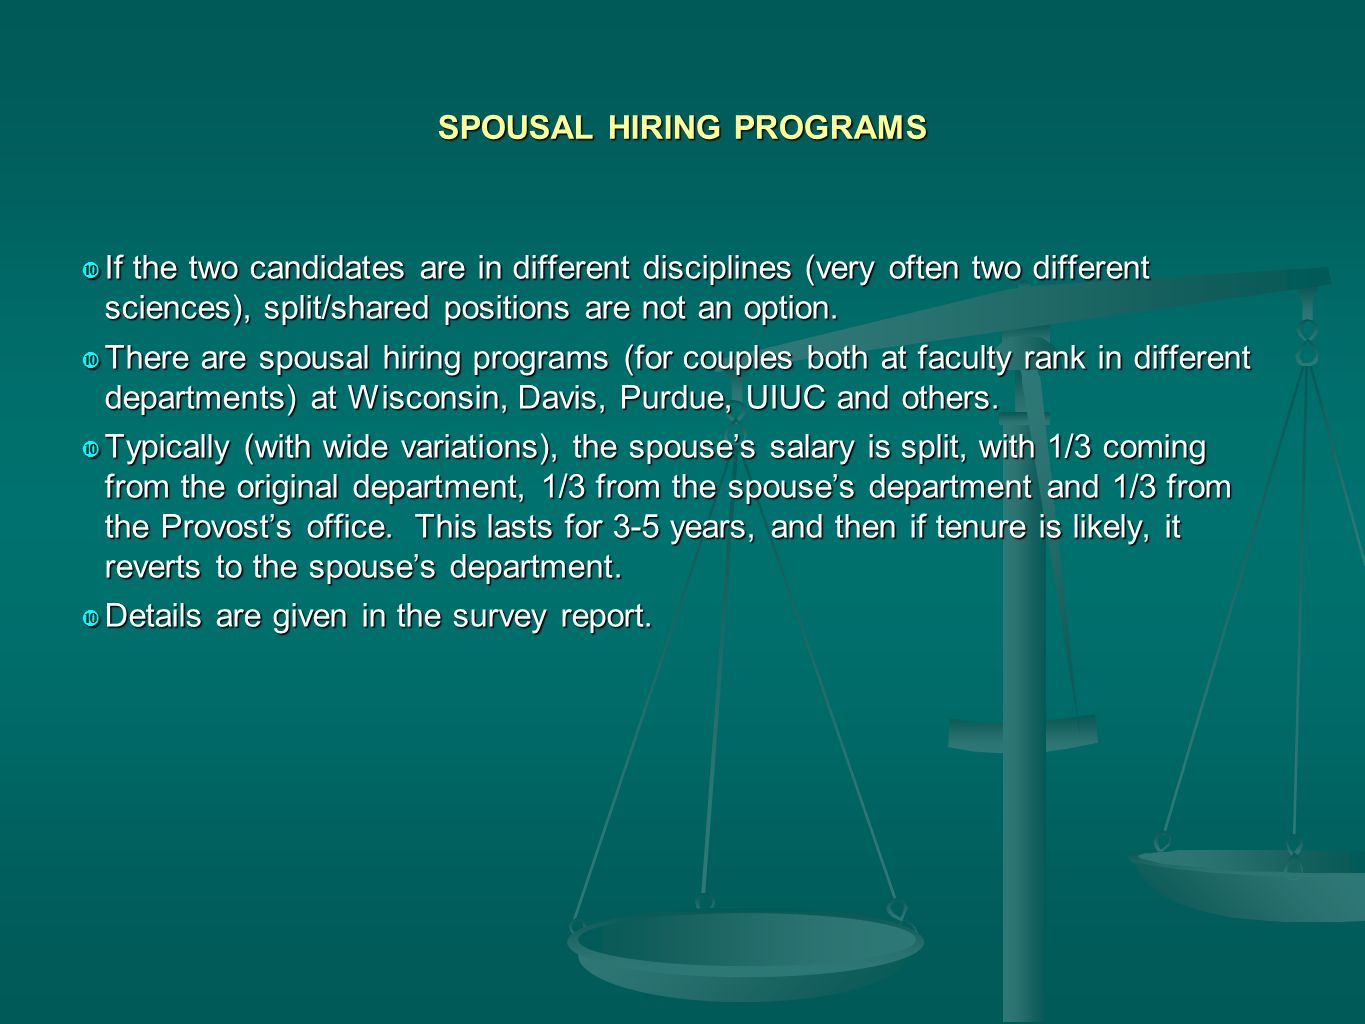 SPOUSAL HIRING PROGRAMS  If the two candidates are in different disciplines (very often two different sciences), split/shared positions are not an option.